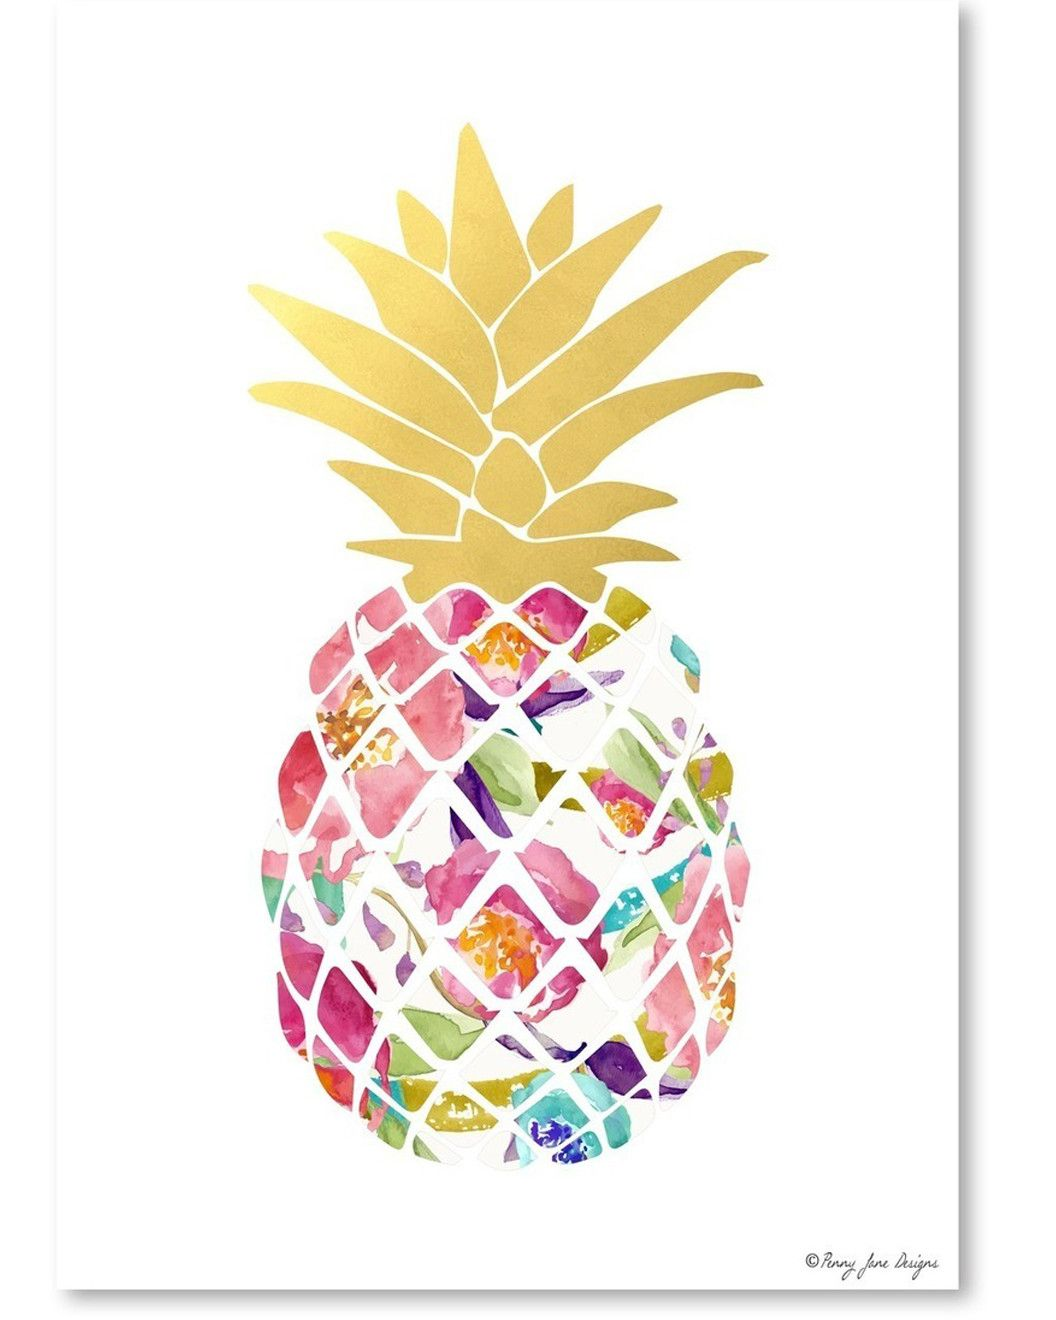 Spotted This Watercolor Floral And Gold Pineapple By Penny Jane Designs On Rue La Shop Quickly